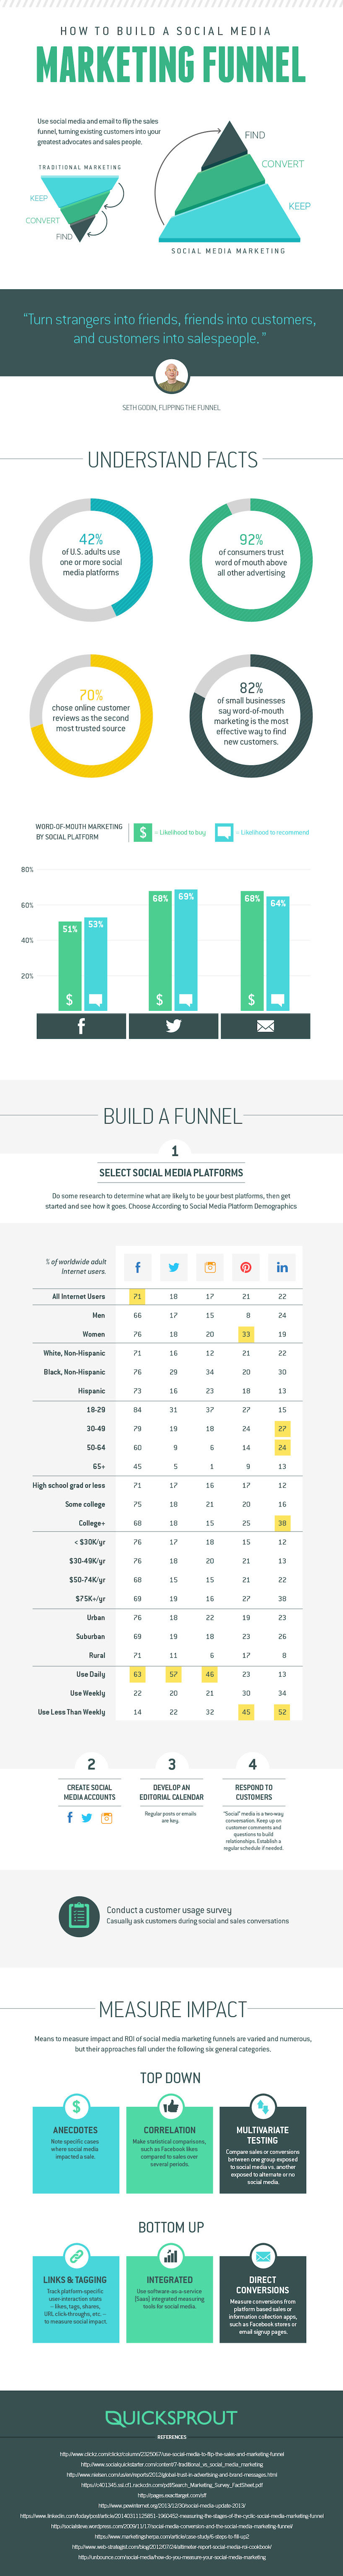 How to Build a #SocialMedia #Marketing Funnel and Turn Visitors Into Leads - #infographic